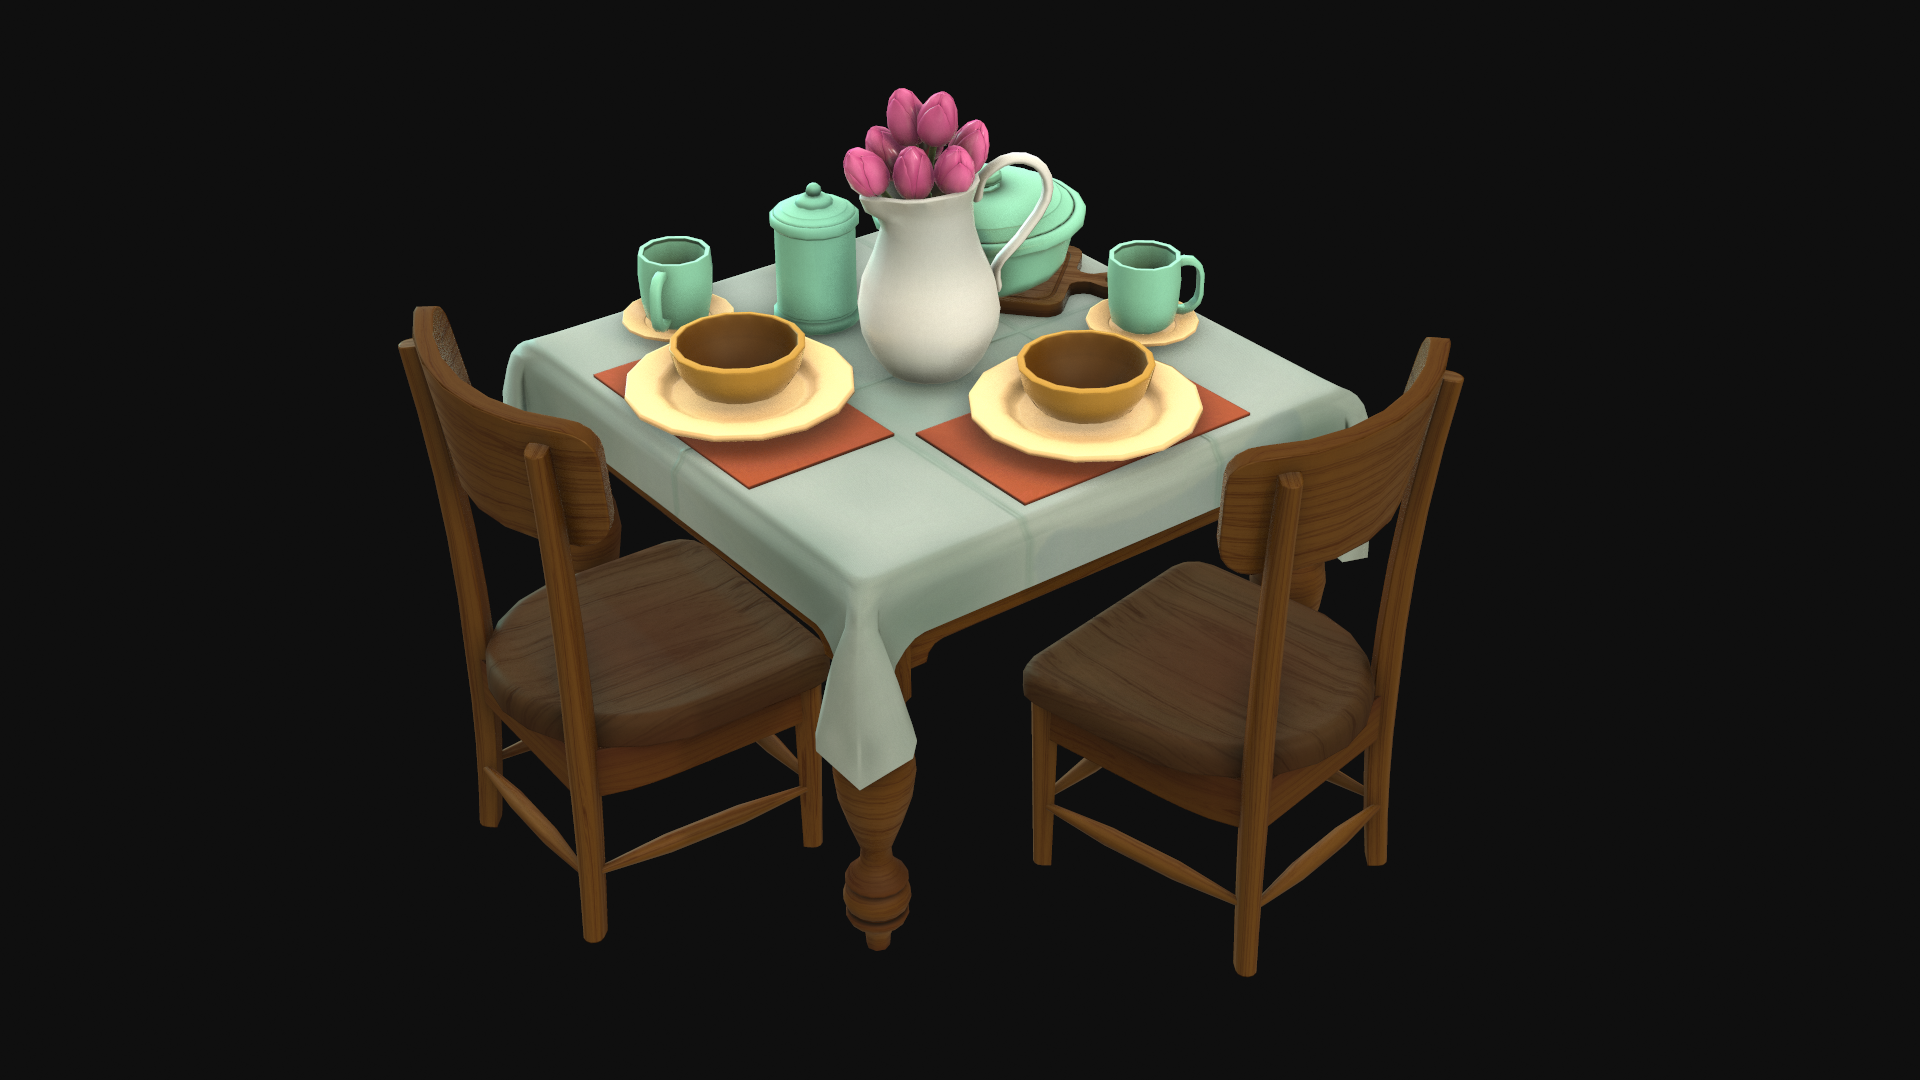 Table - Final Fantasy IX scene fan art asset